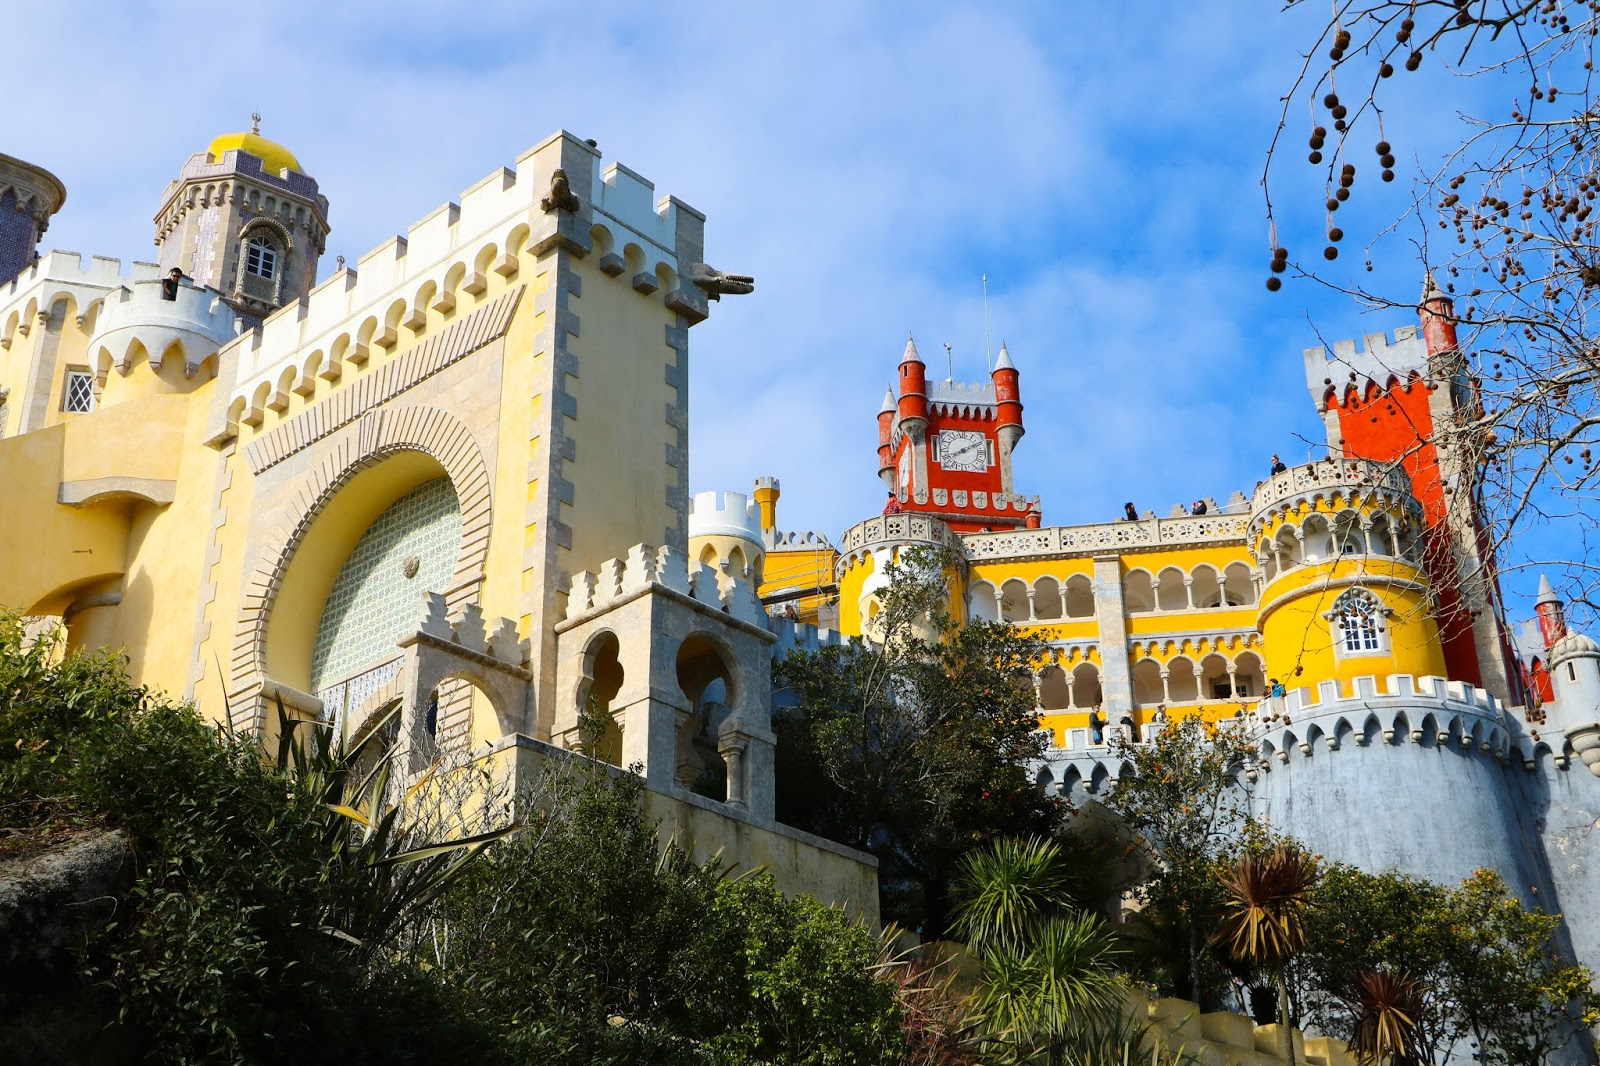 Gorgeous Palacio de Pena in Portugal Sintra